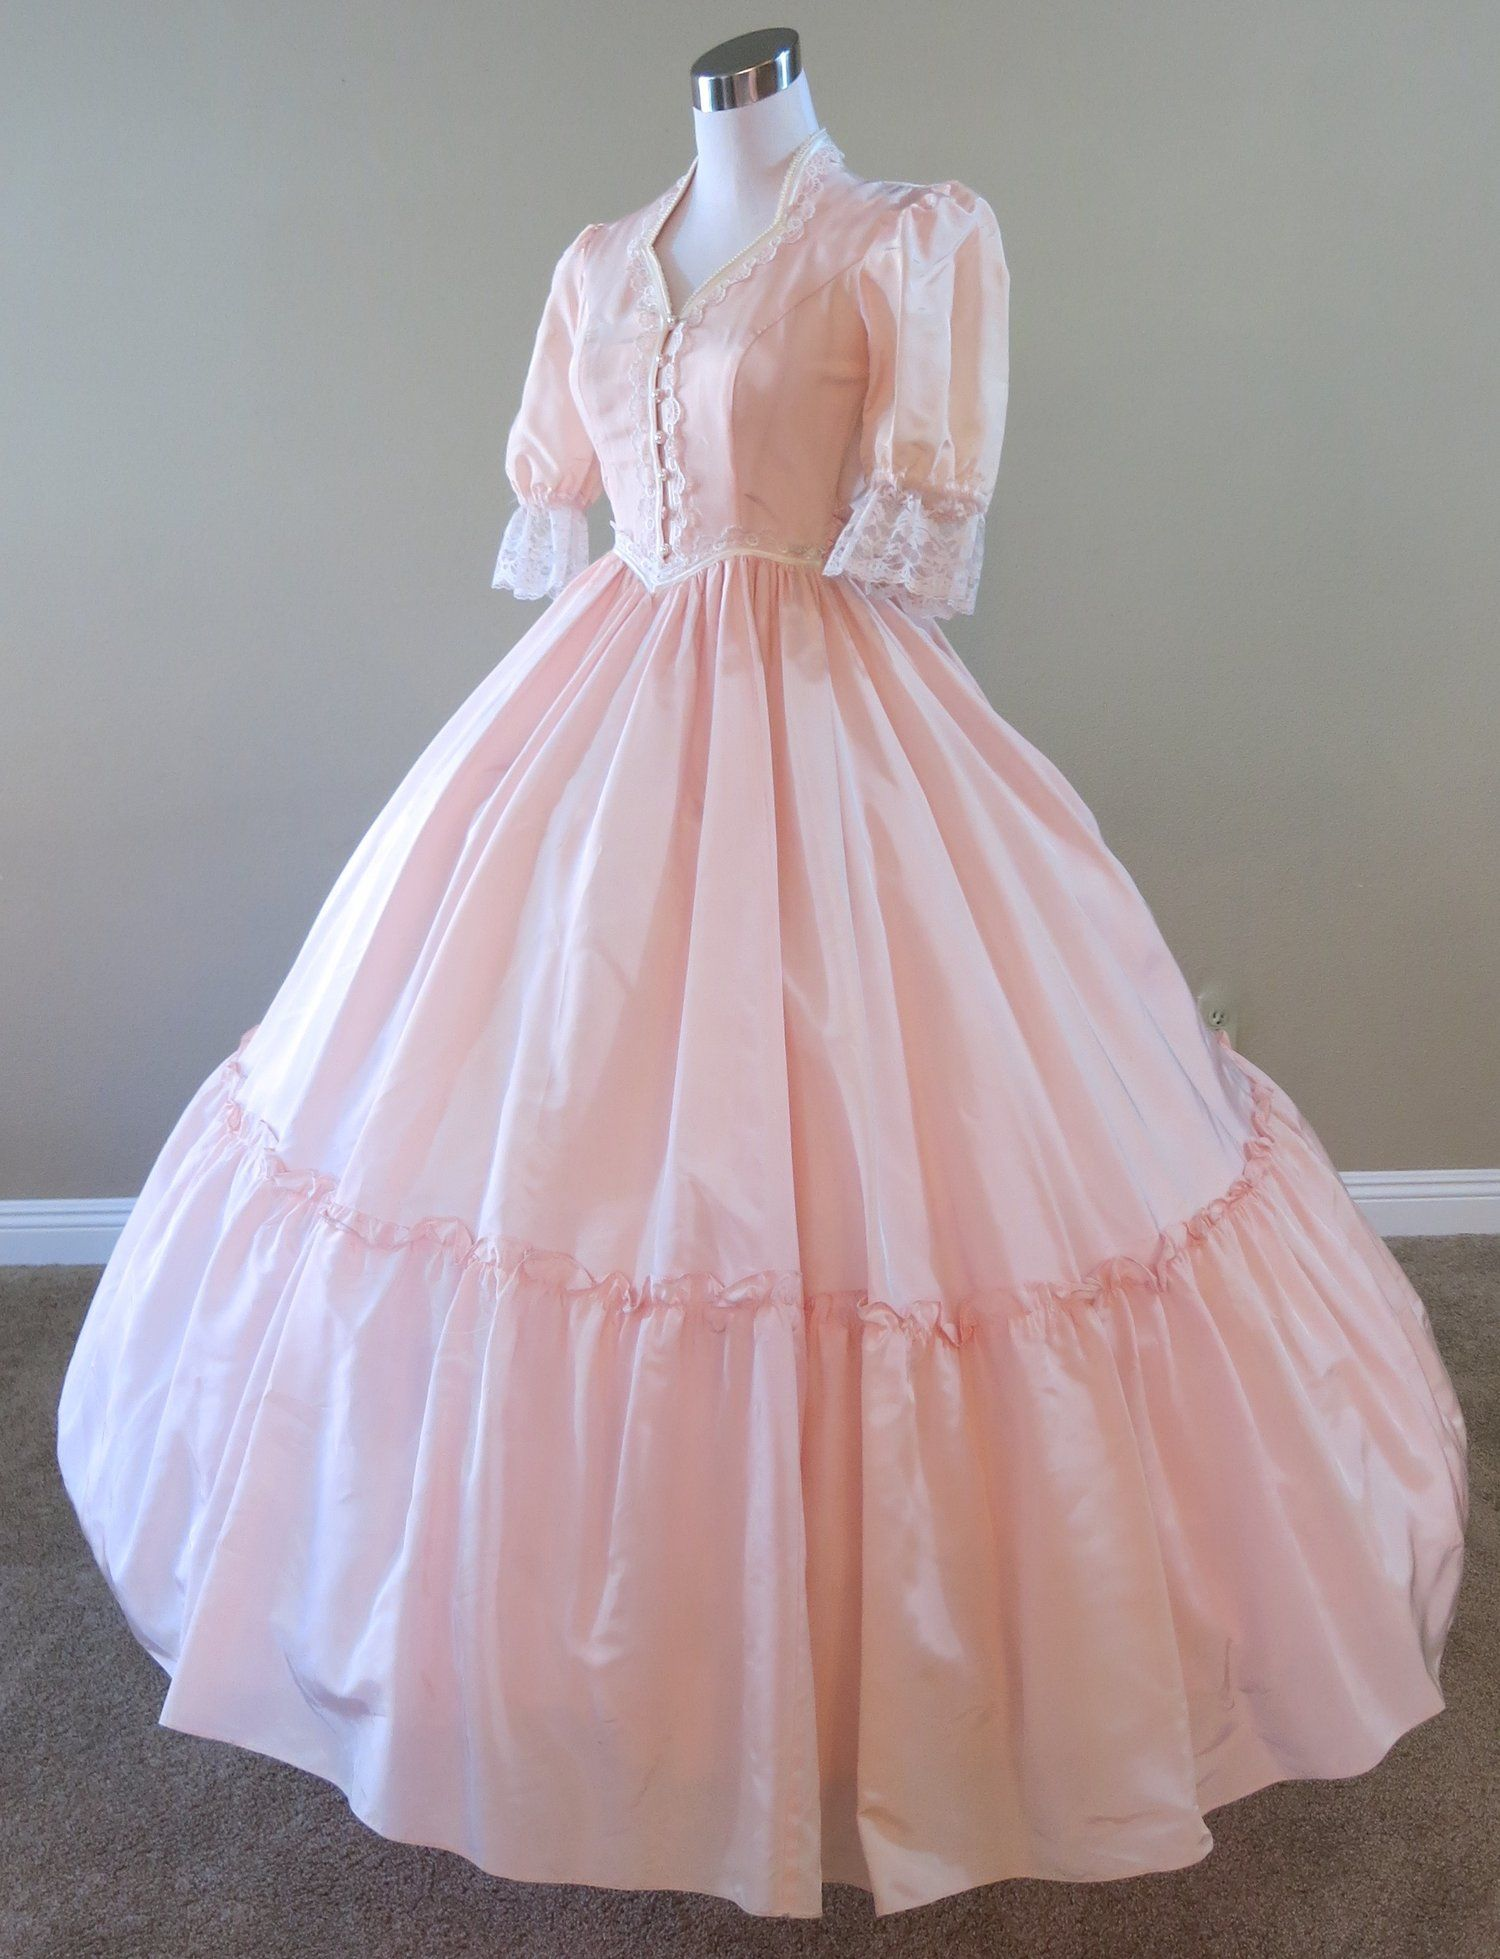 Peach Gown Waist 21 5 Civil War Ball Gowns Costume Victorian Ball Gowns Old Fashion Dresses Southern Belle Dress [ 1959 x 1500 Pixel ]